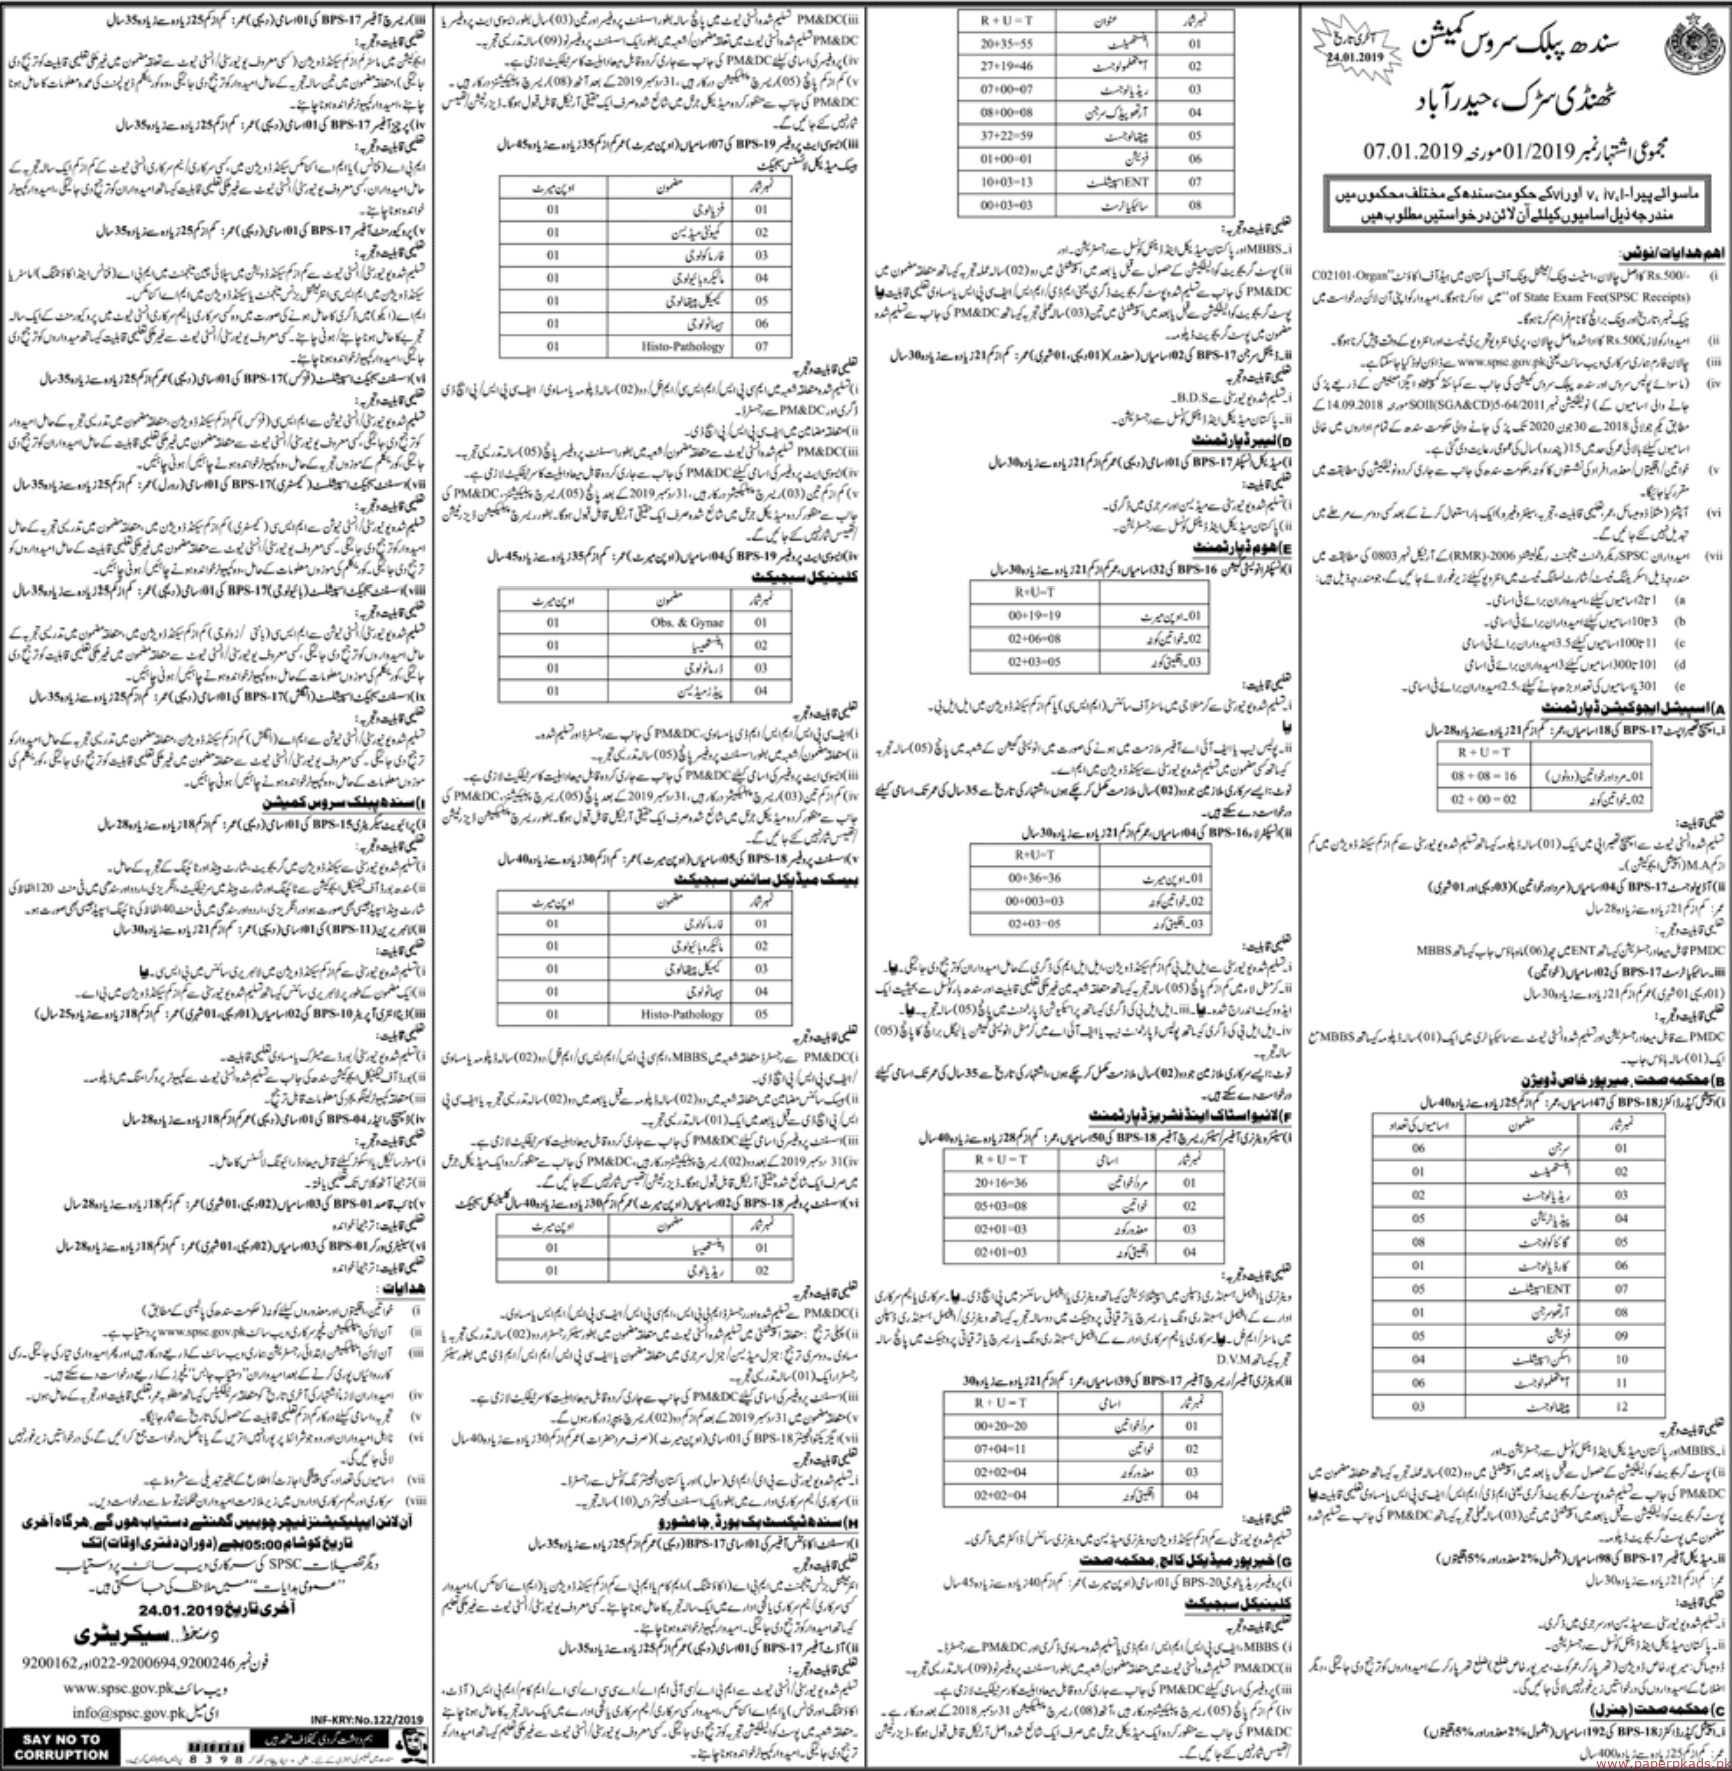 Sindh Public Service Commission (SPSC) Jobs 2019 Latest